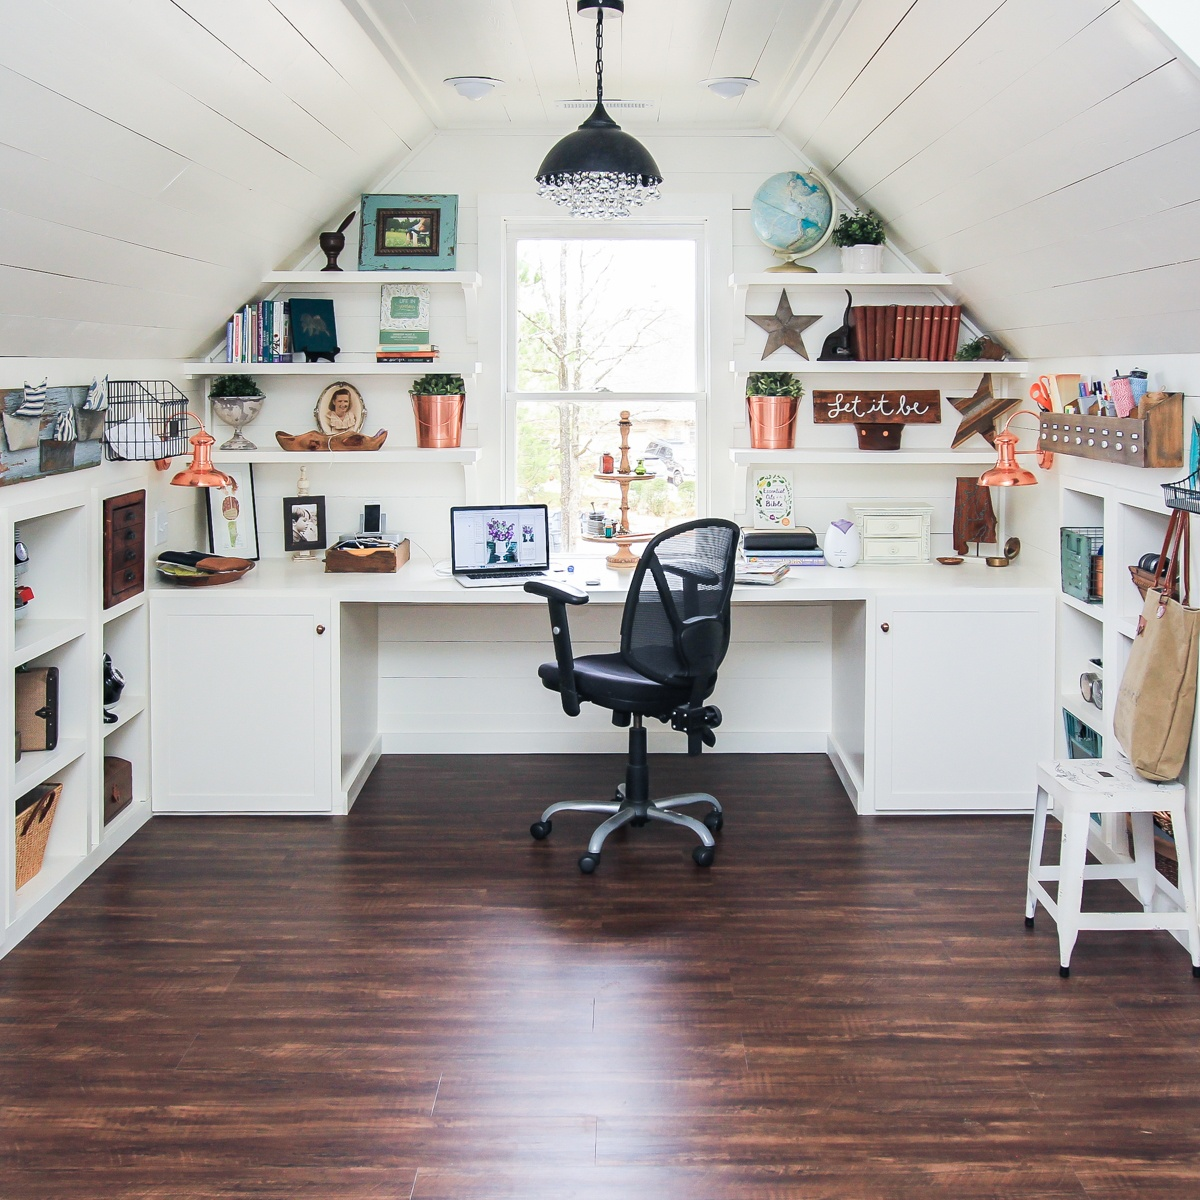 Home Renovation Ideas by Portofino Convert Your Attic to an Office Space 2